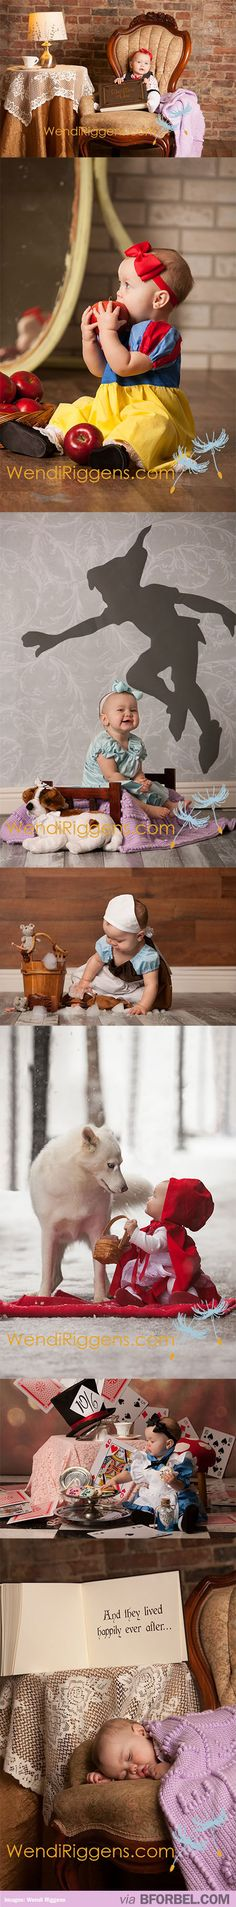 What an adorable photo shoot idea!  At first, she's reading the fairytale book then it shows her in each character for each one!  Last picture shows her asleep after all of her adventure!  So cute!  Oh my gosh, @Jess Pearl Pearl Pearl Pearl Pearl Pearl Pearl Pearl Pearl Liu Hewson... can we do this with Abigail?!